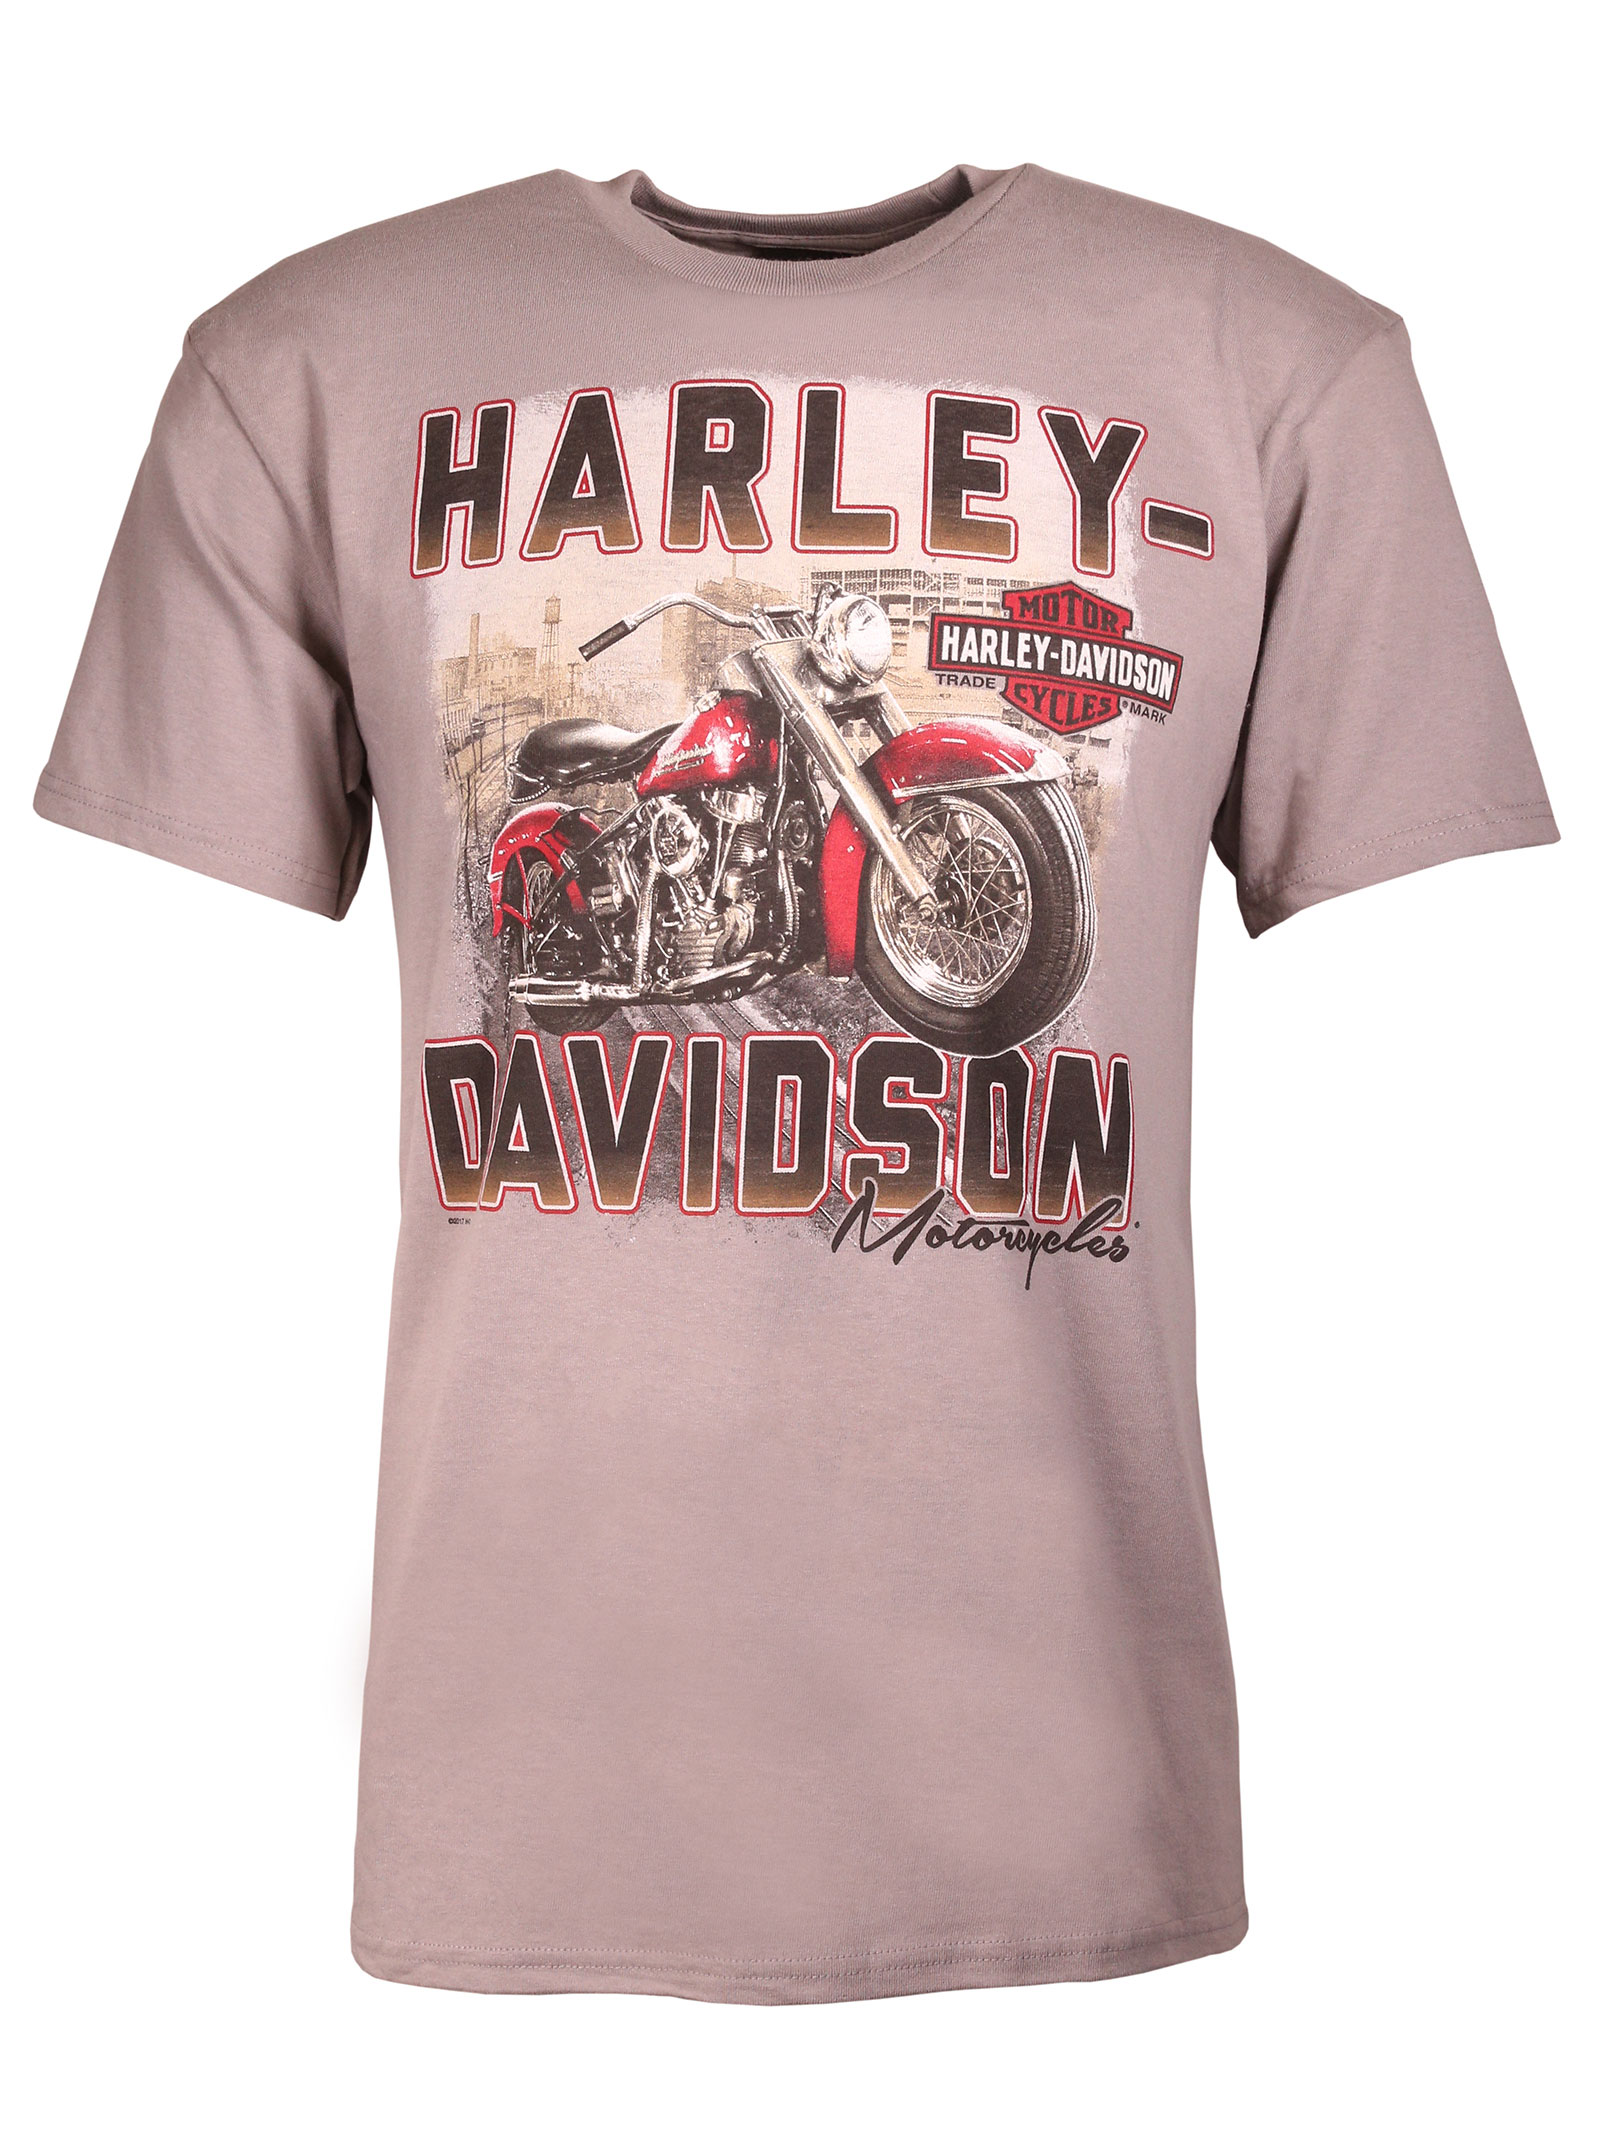 harley davidson t shirt iron excellence at thunderbike shop. Black Bedroom Furniture Sets. Home Design Ideas